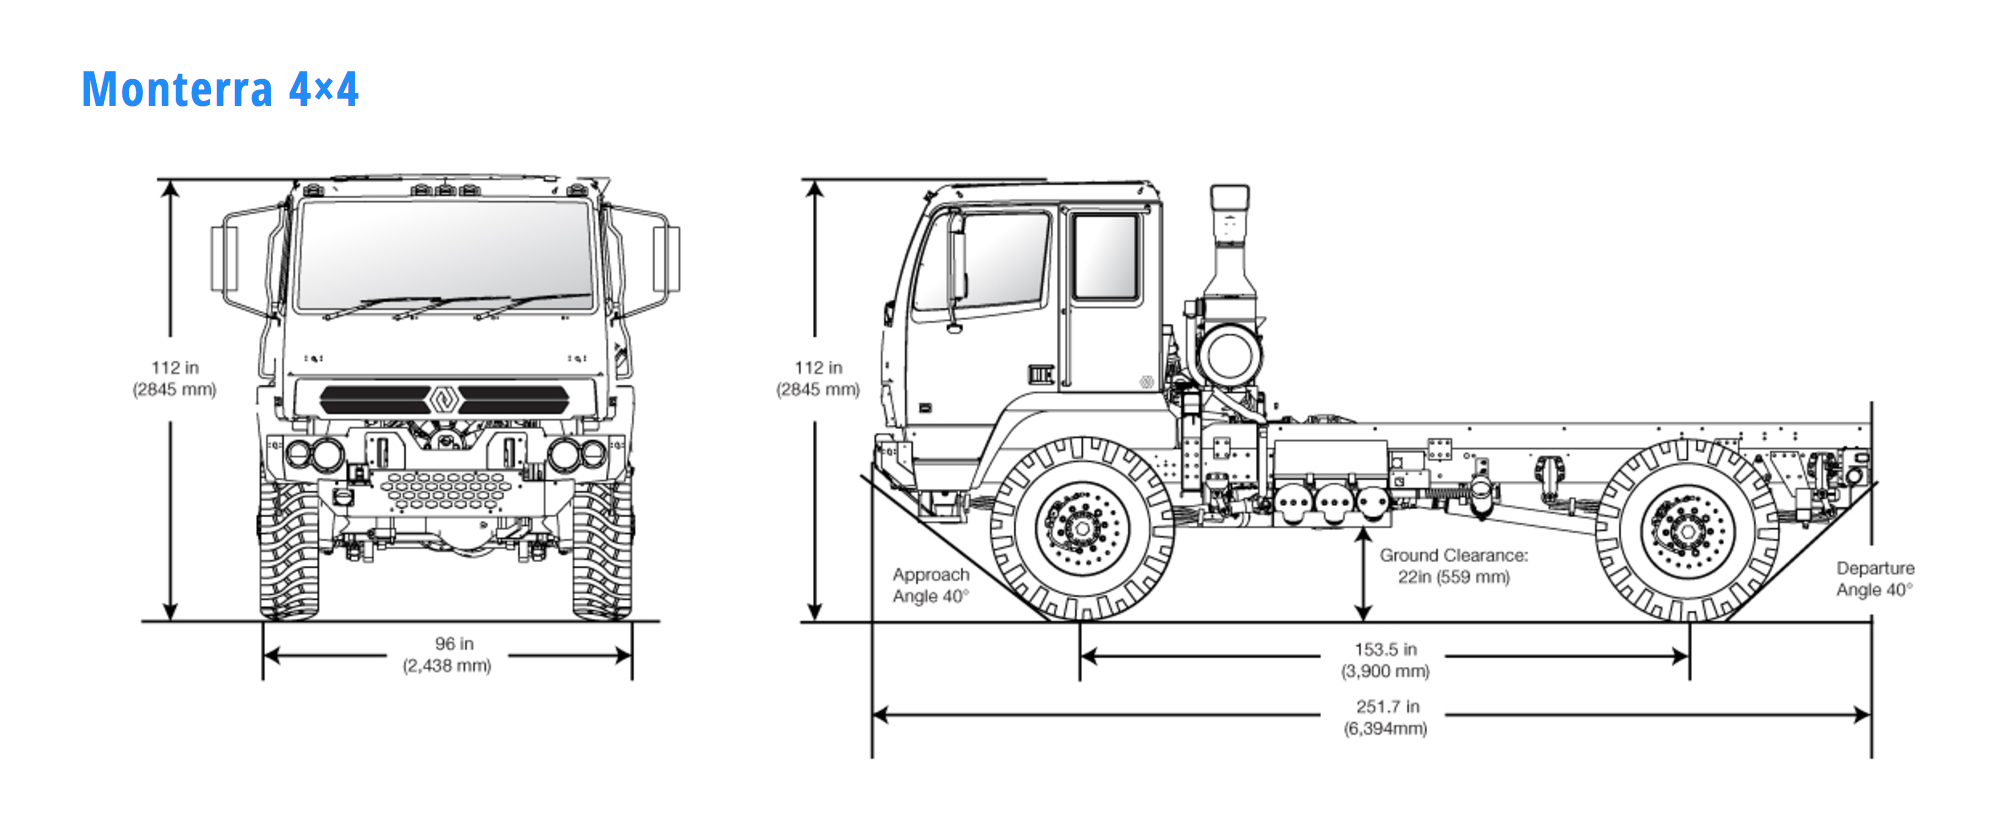 u s made cat powered monterra 4 4 6 6 cabovers are reset army rh equipmentworld com Fire Pump System Diagram Fire Pump Components Diagram